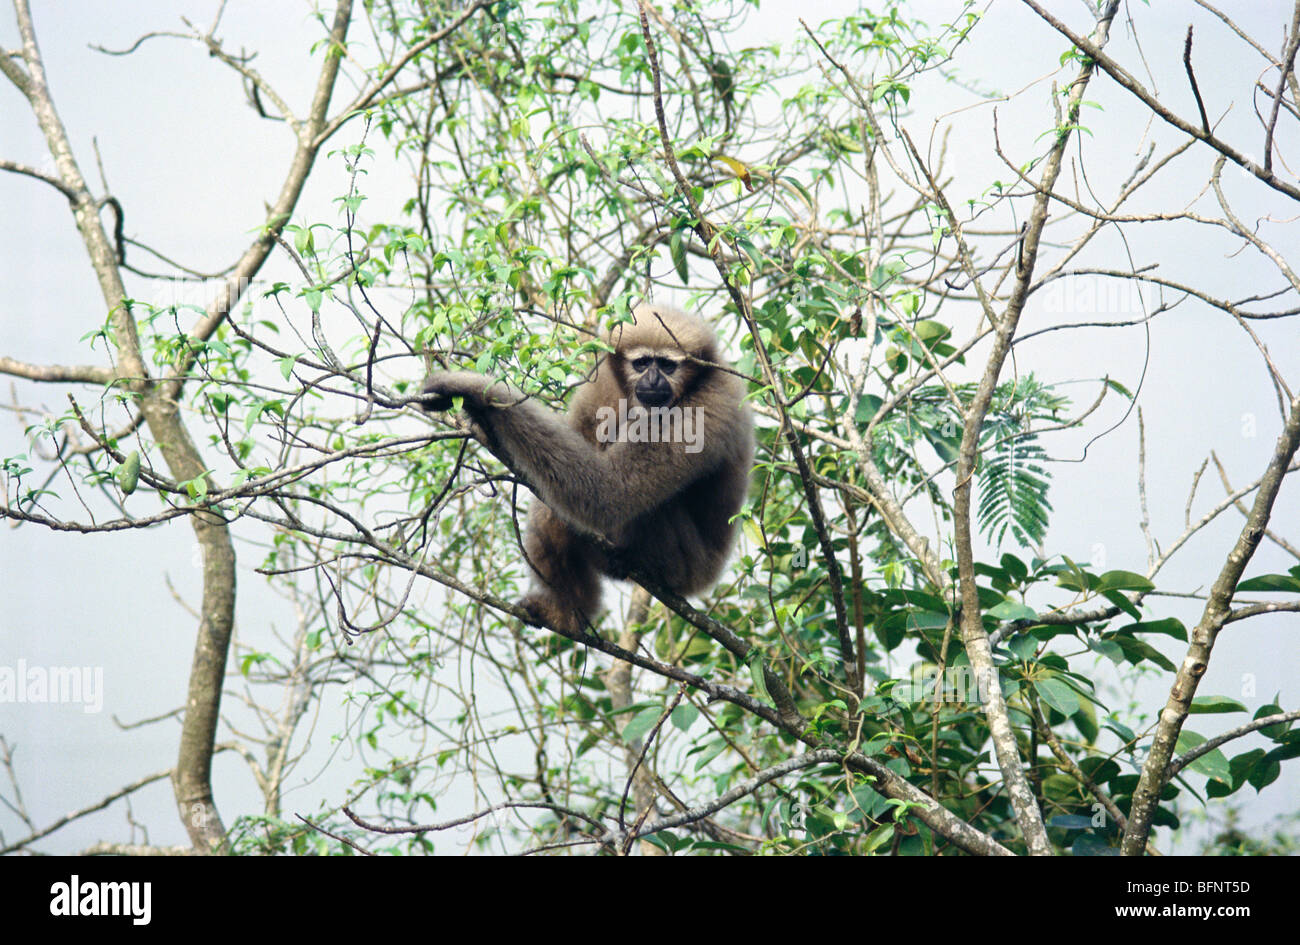 IKA 60647 : Endangered ape hoolock gibbon hylobates hoolock on tree - Stock Image